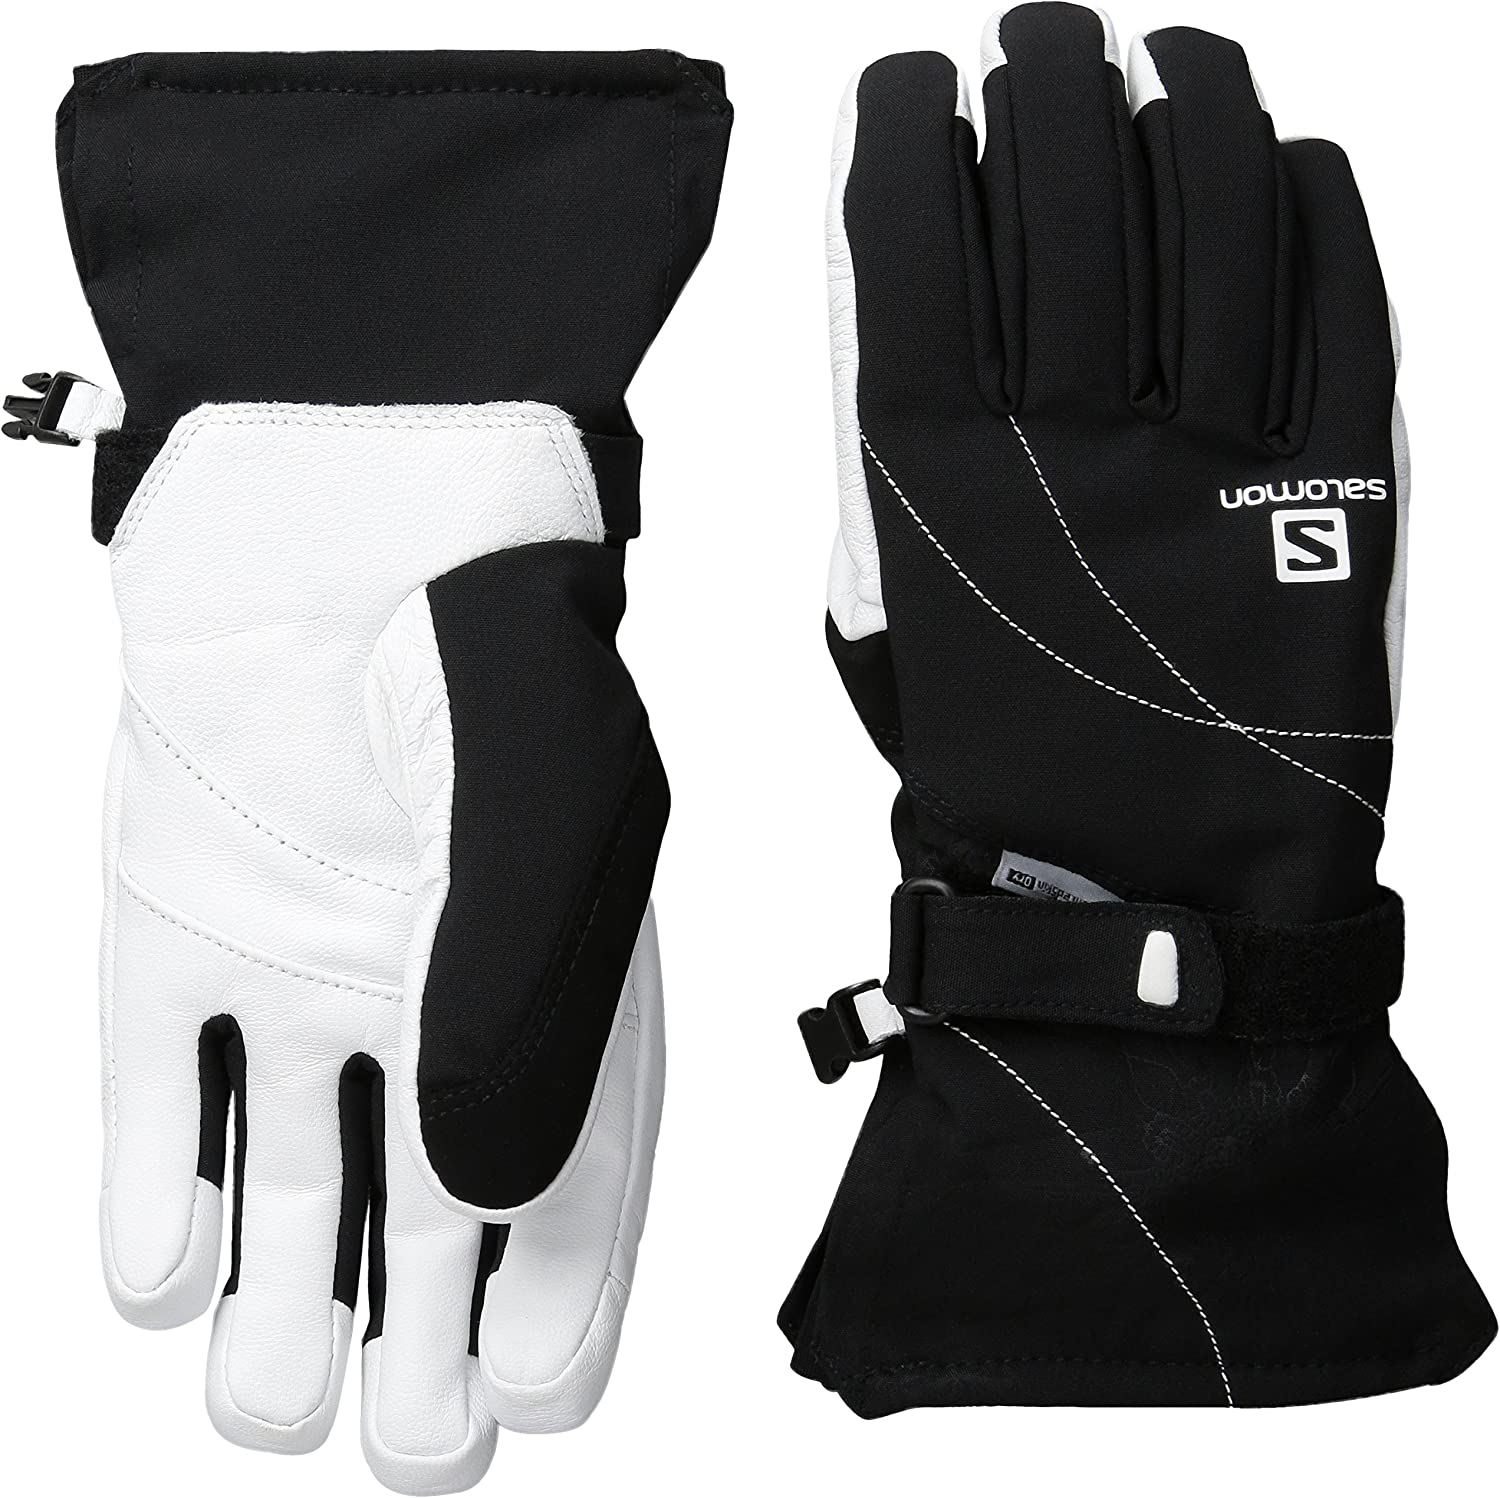 TALLA XL. Salomon Propeller Dry W Guantes, Mujer